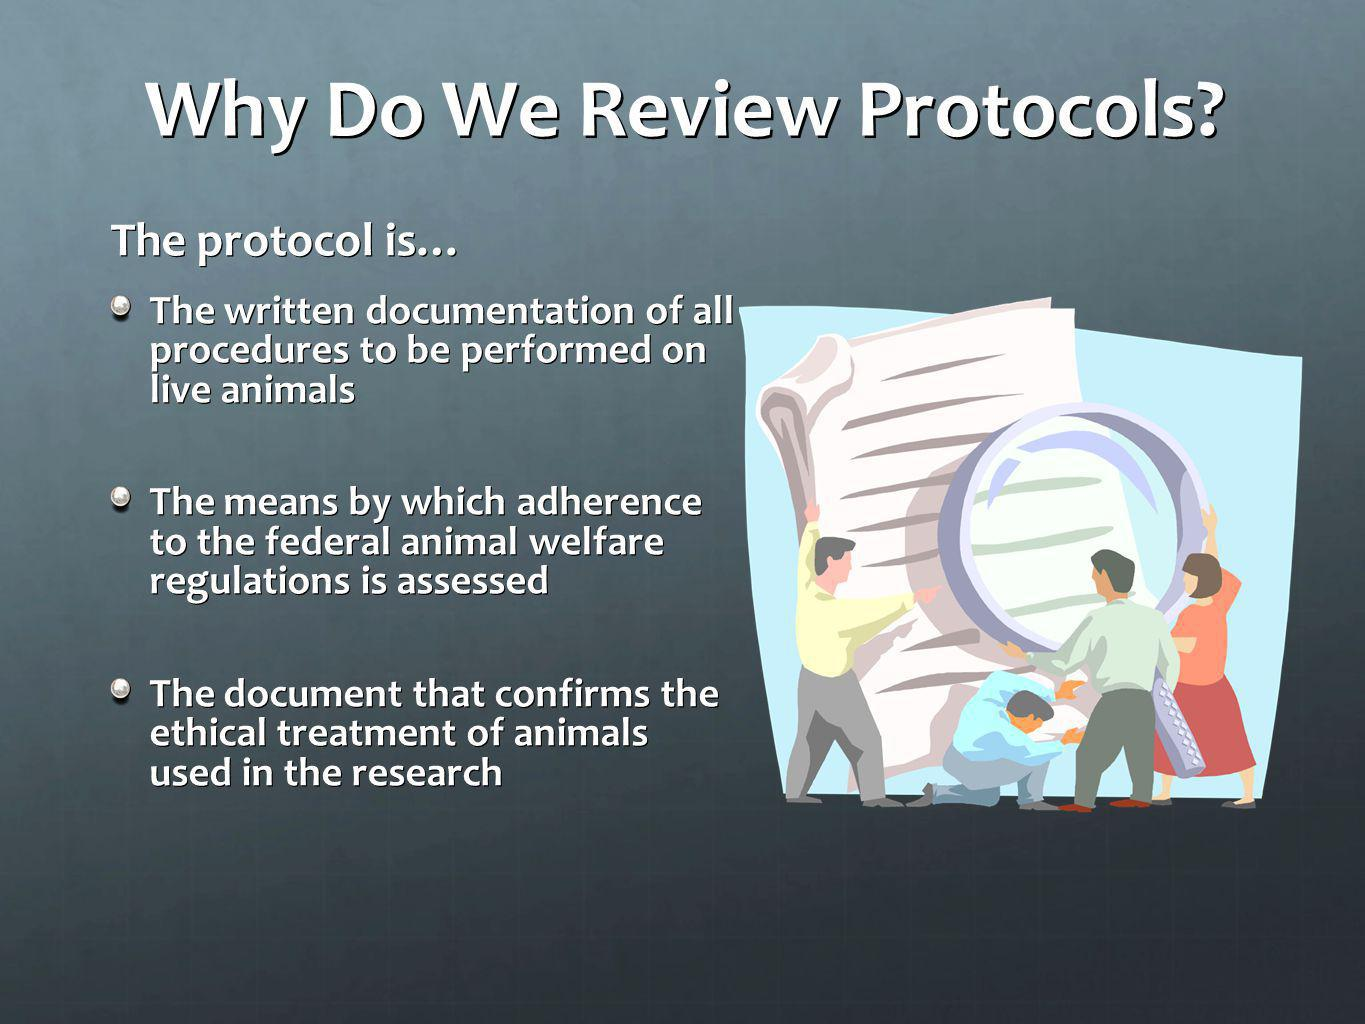 Why Do We Review Protocols